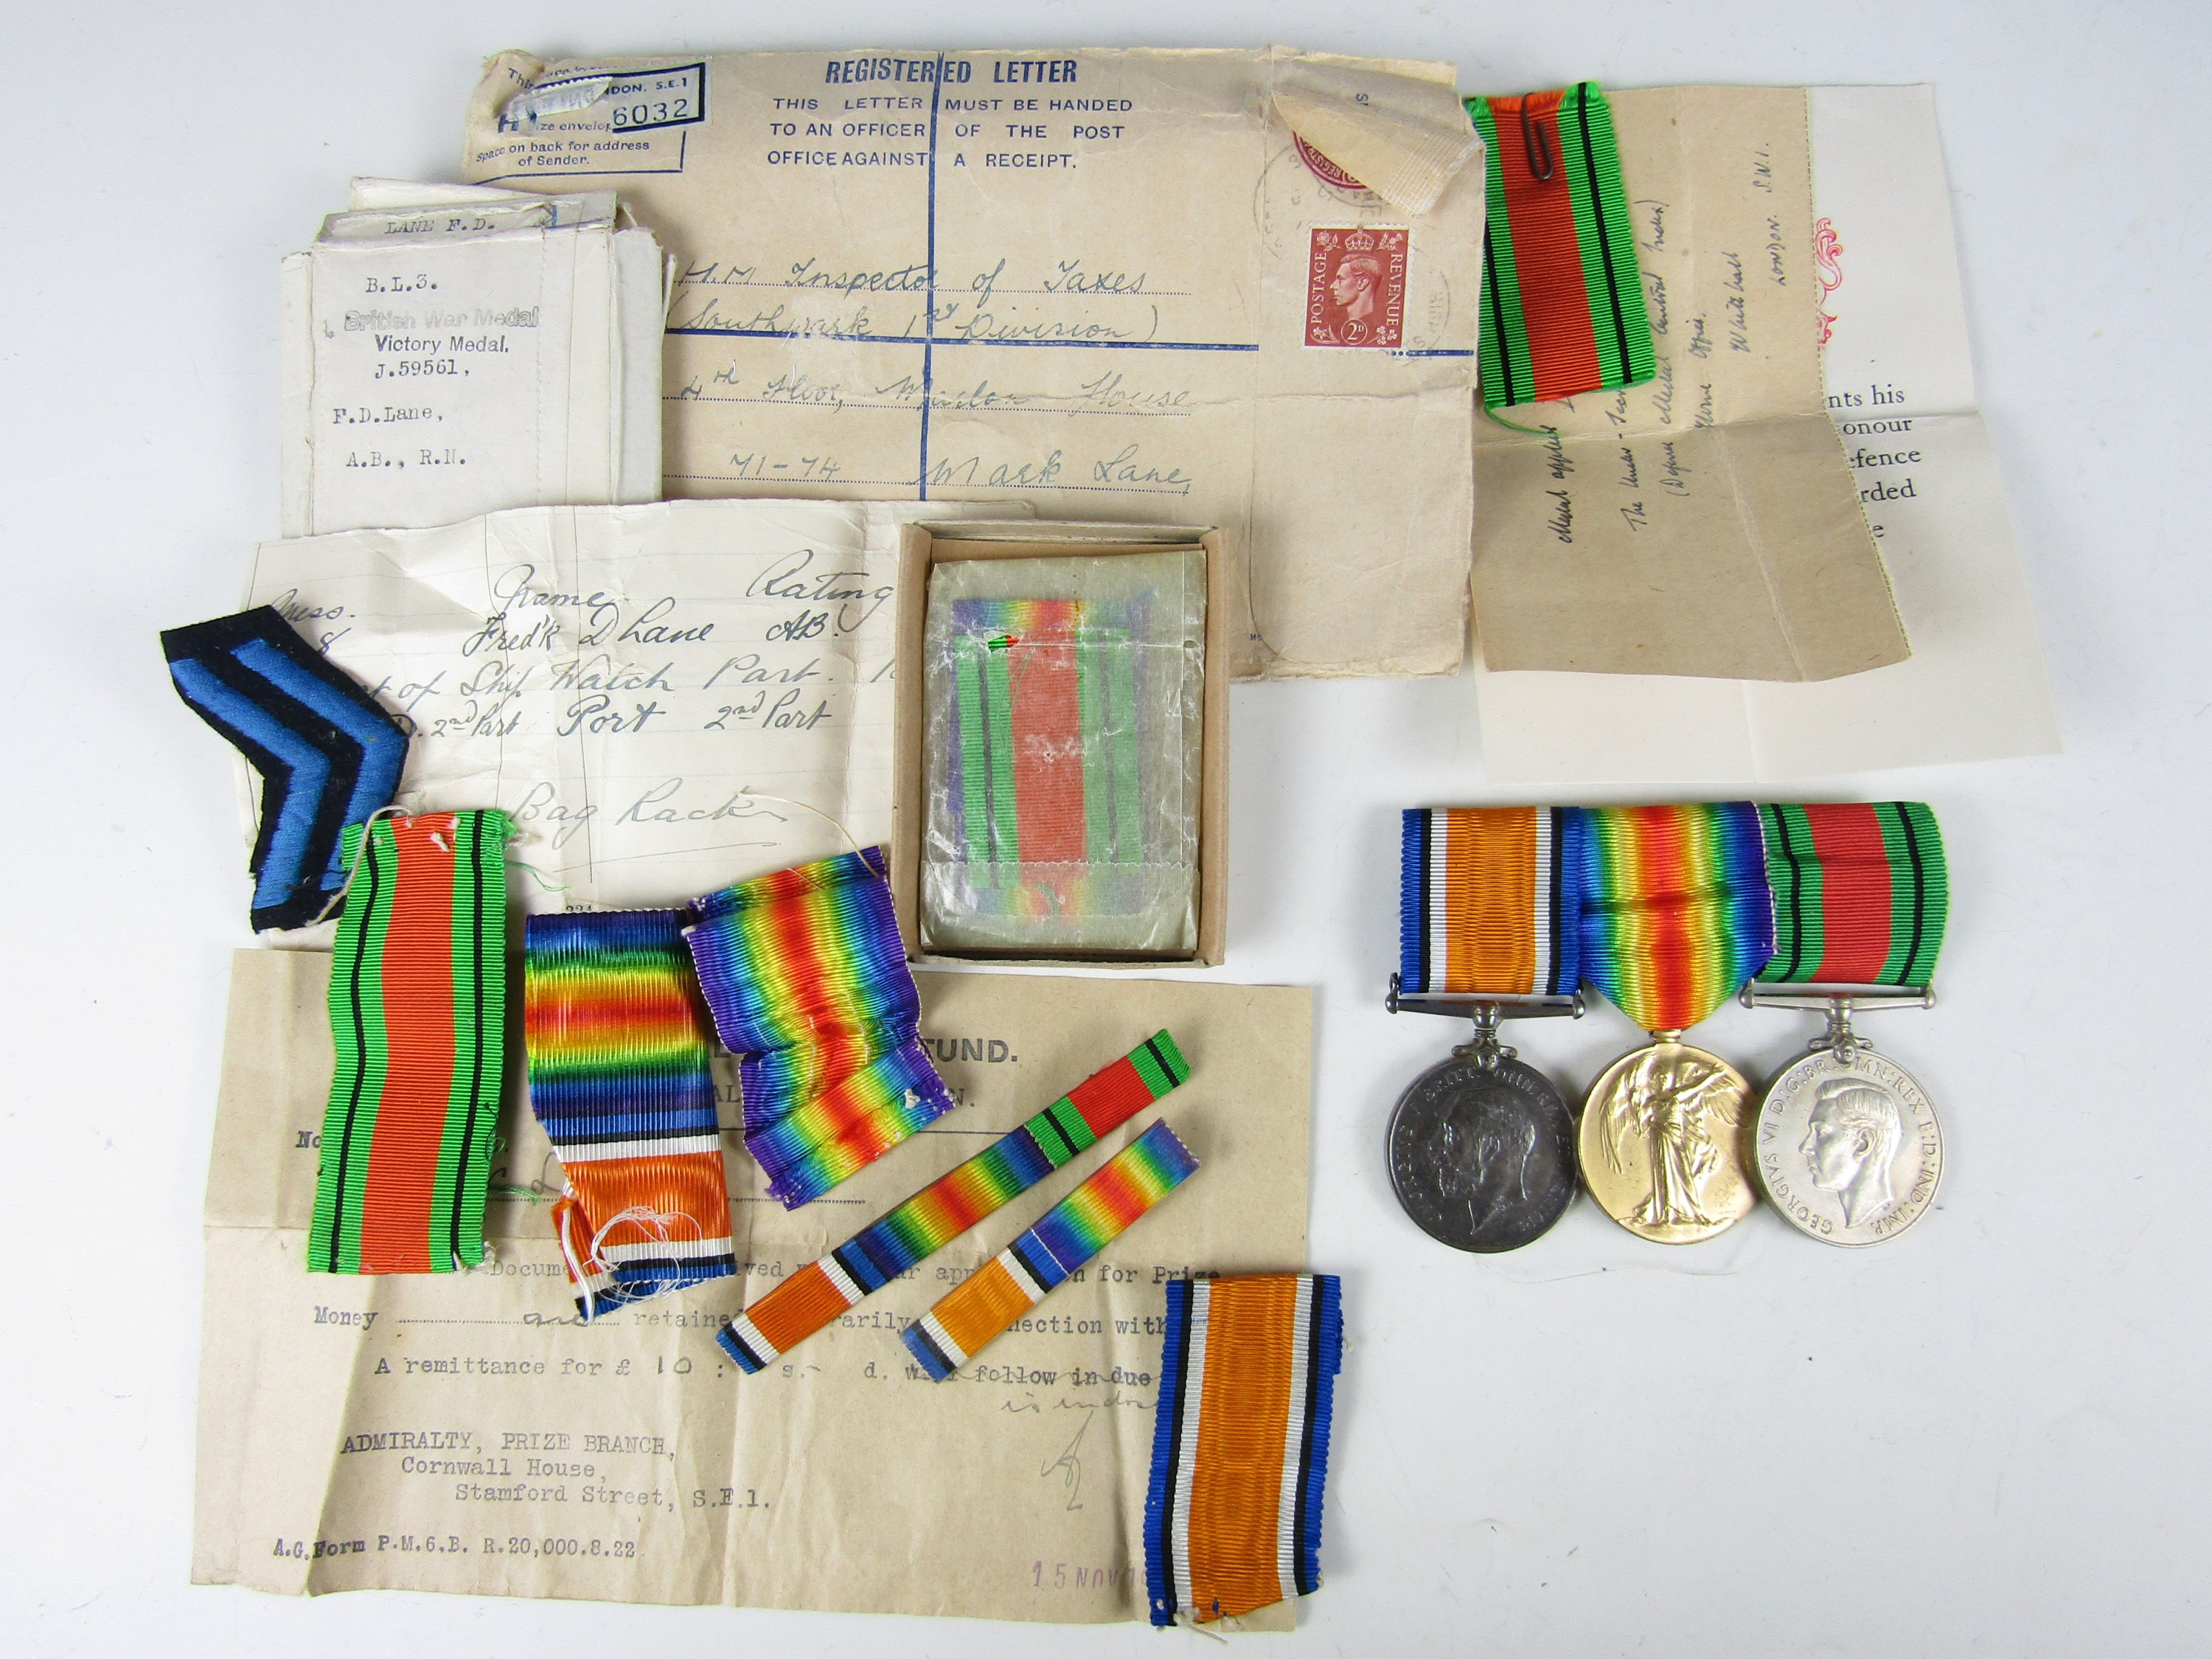 Lot 54 - A Great War and Second World War medal group comprising British War and Victory medals to J. 59561 F